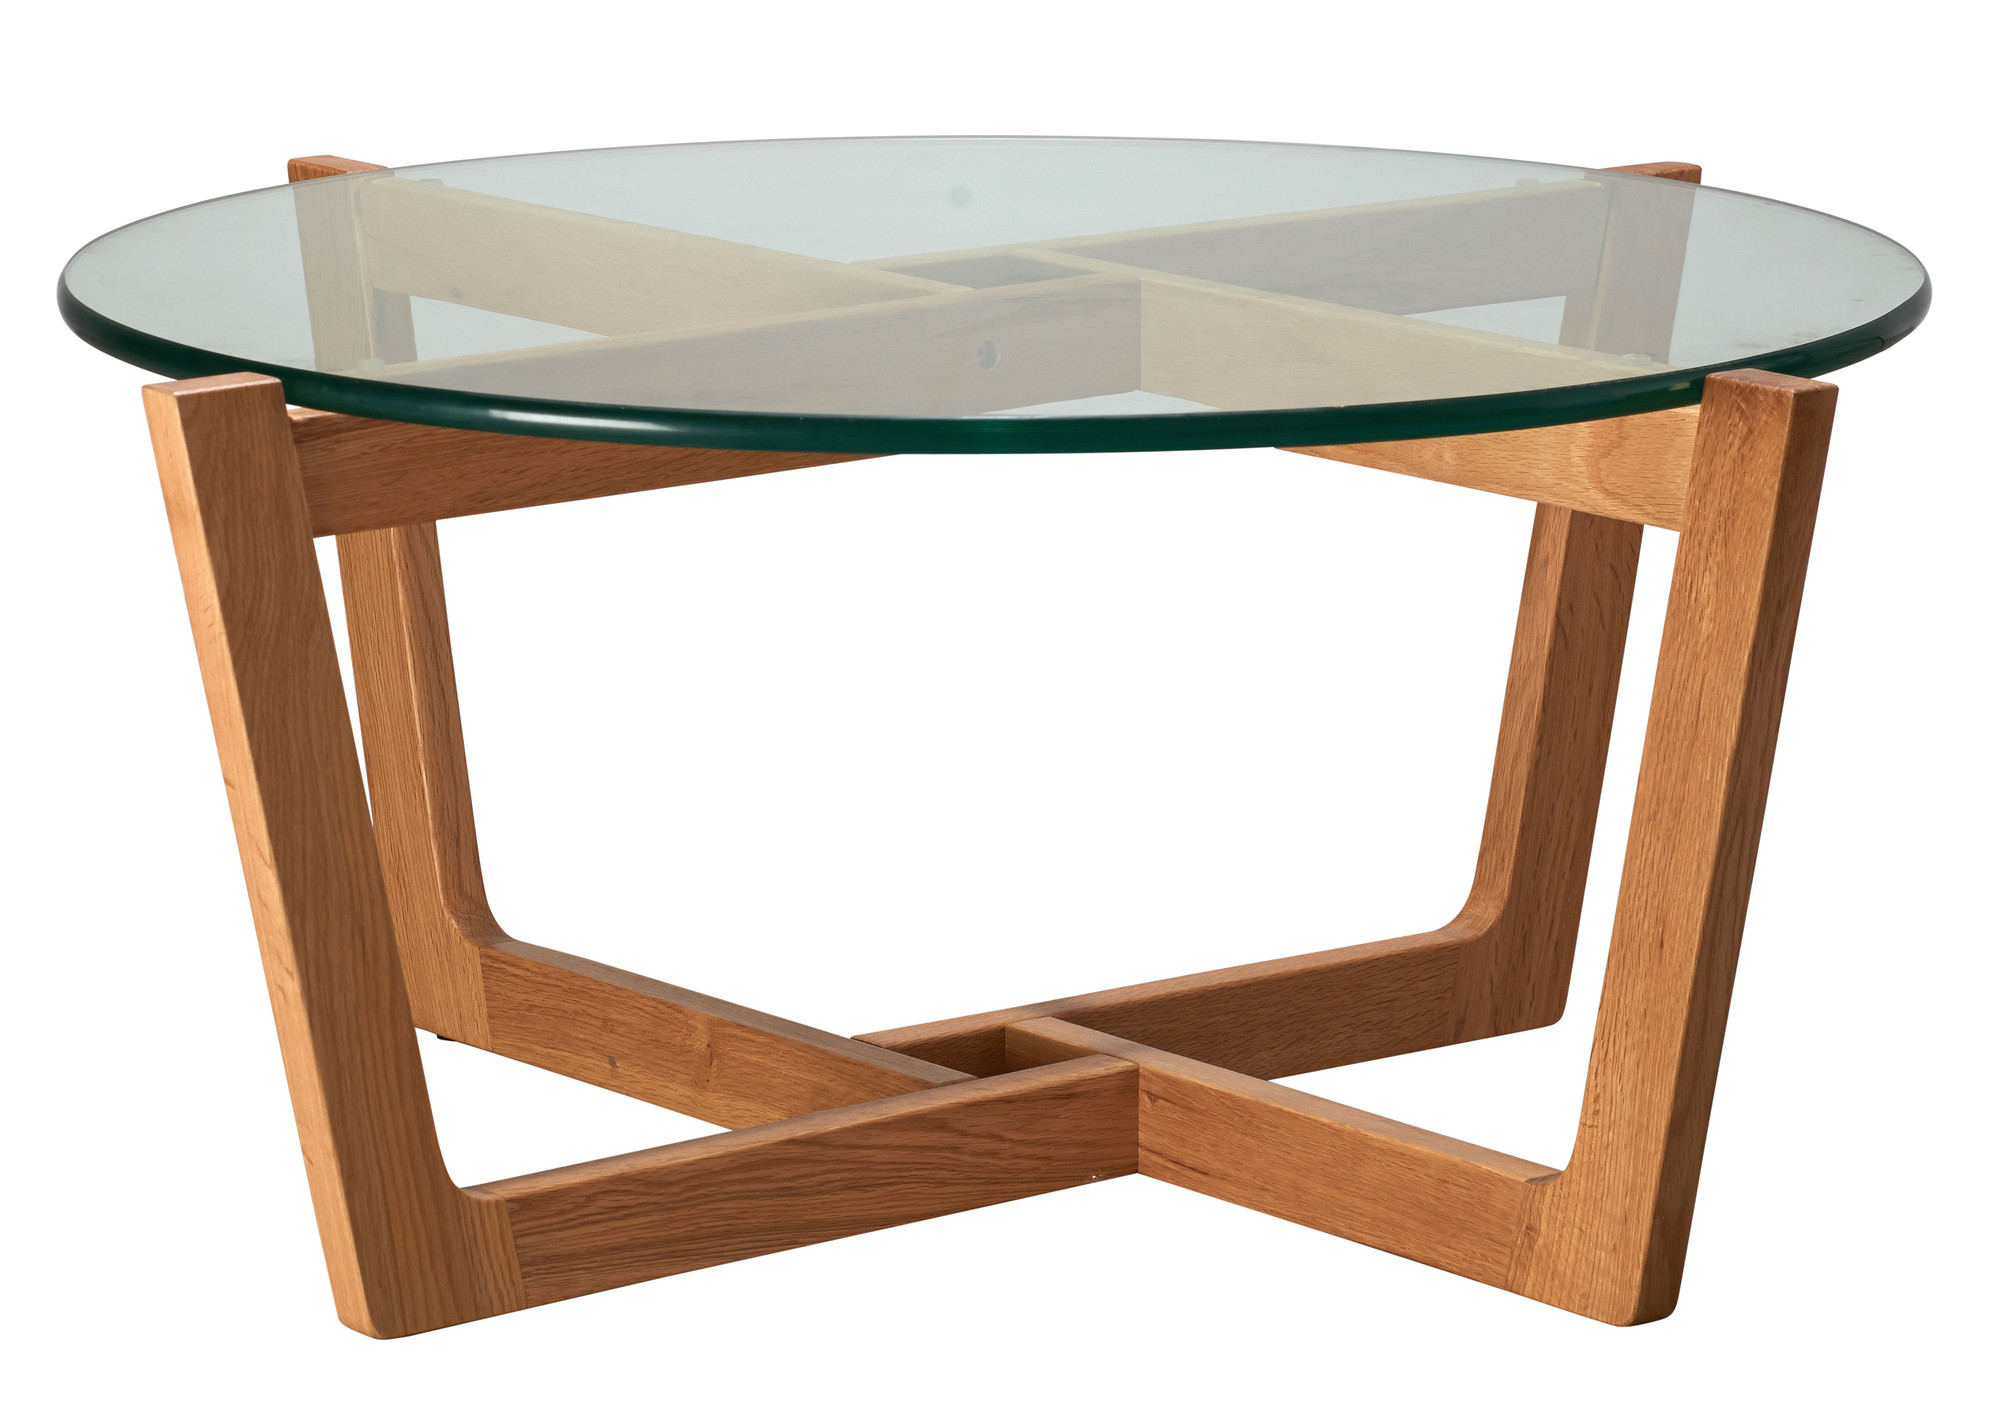 New glass monterey coffee table ebay for Coffee tables ebay australia